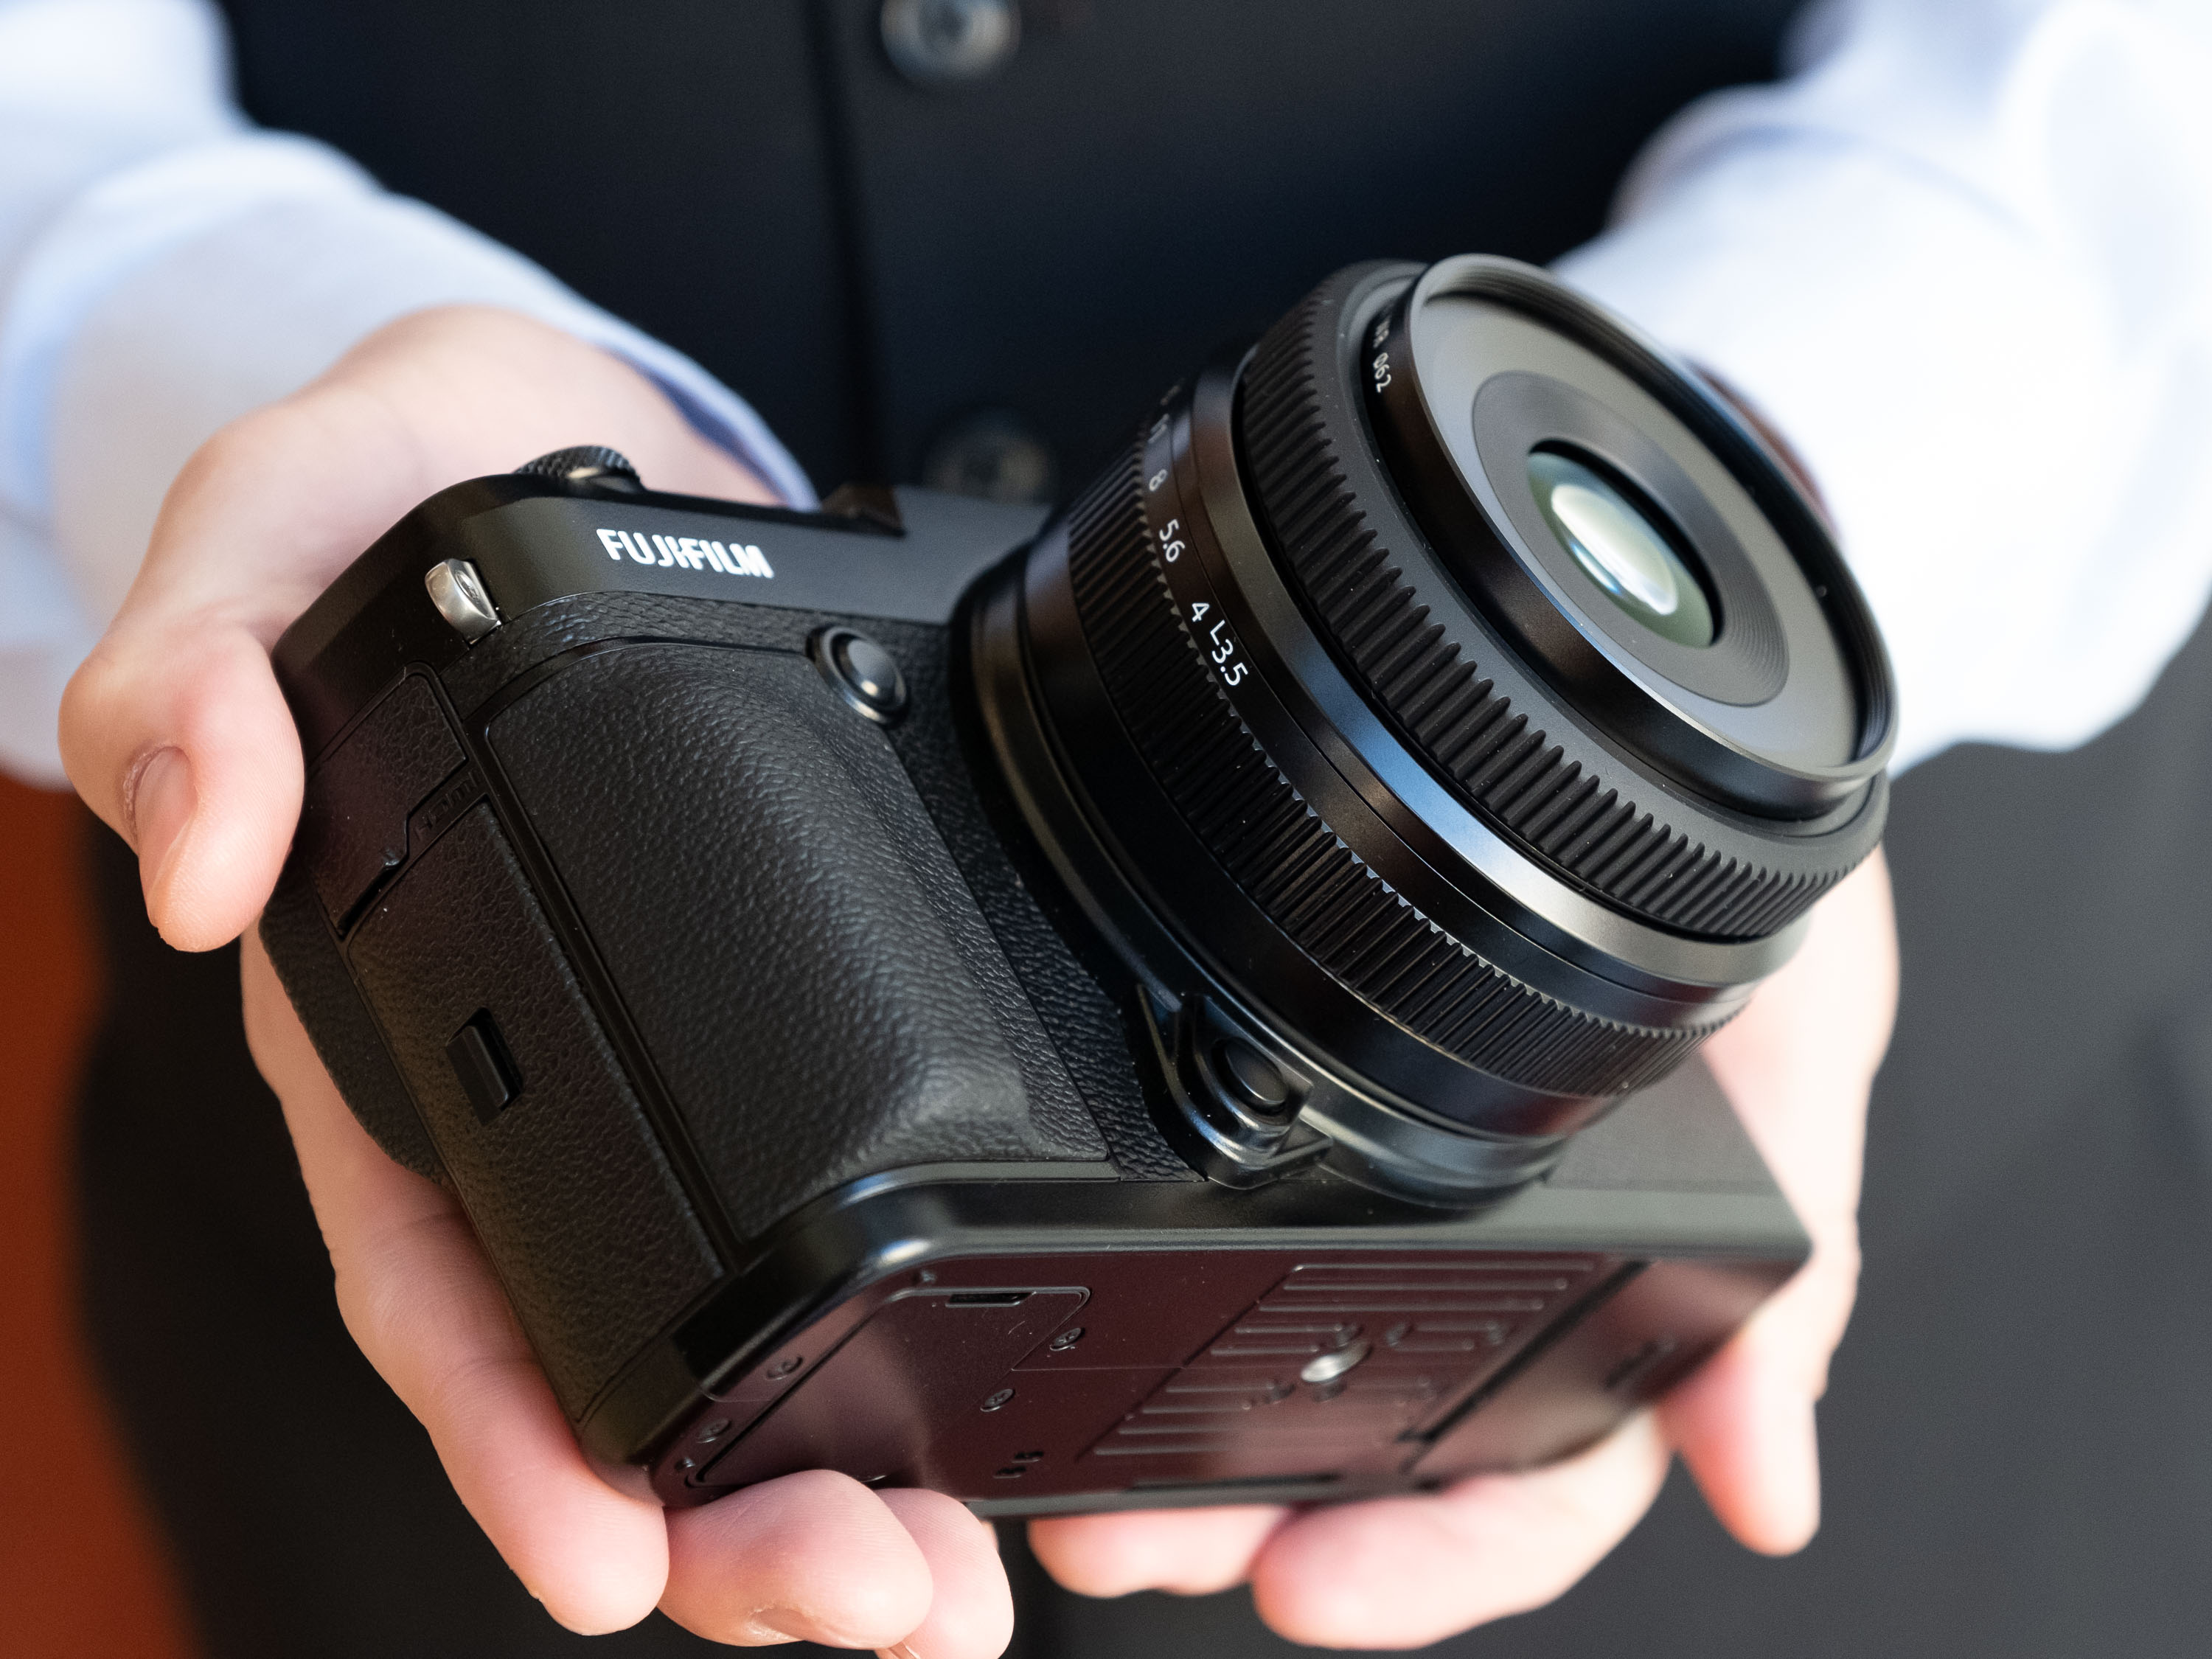 EXCLUSIVE: Hands-on with upcoming Fujifilm XF and GF lenses